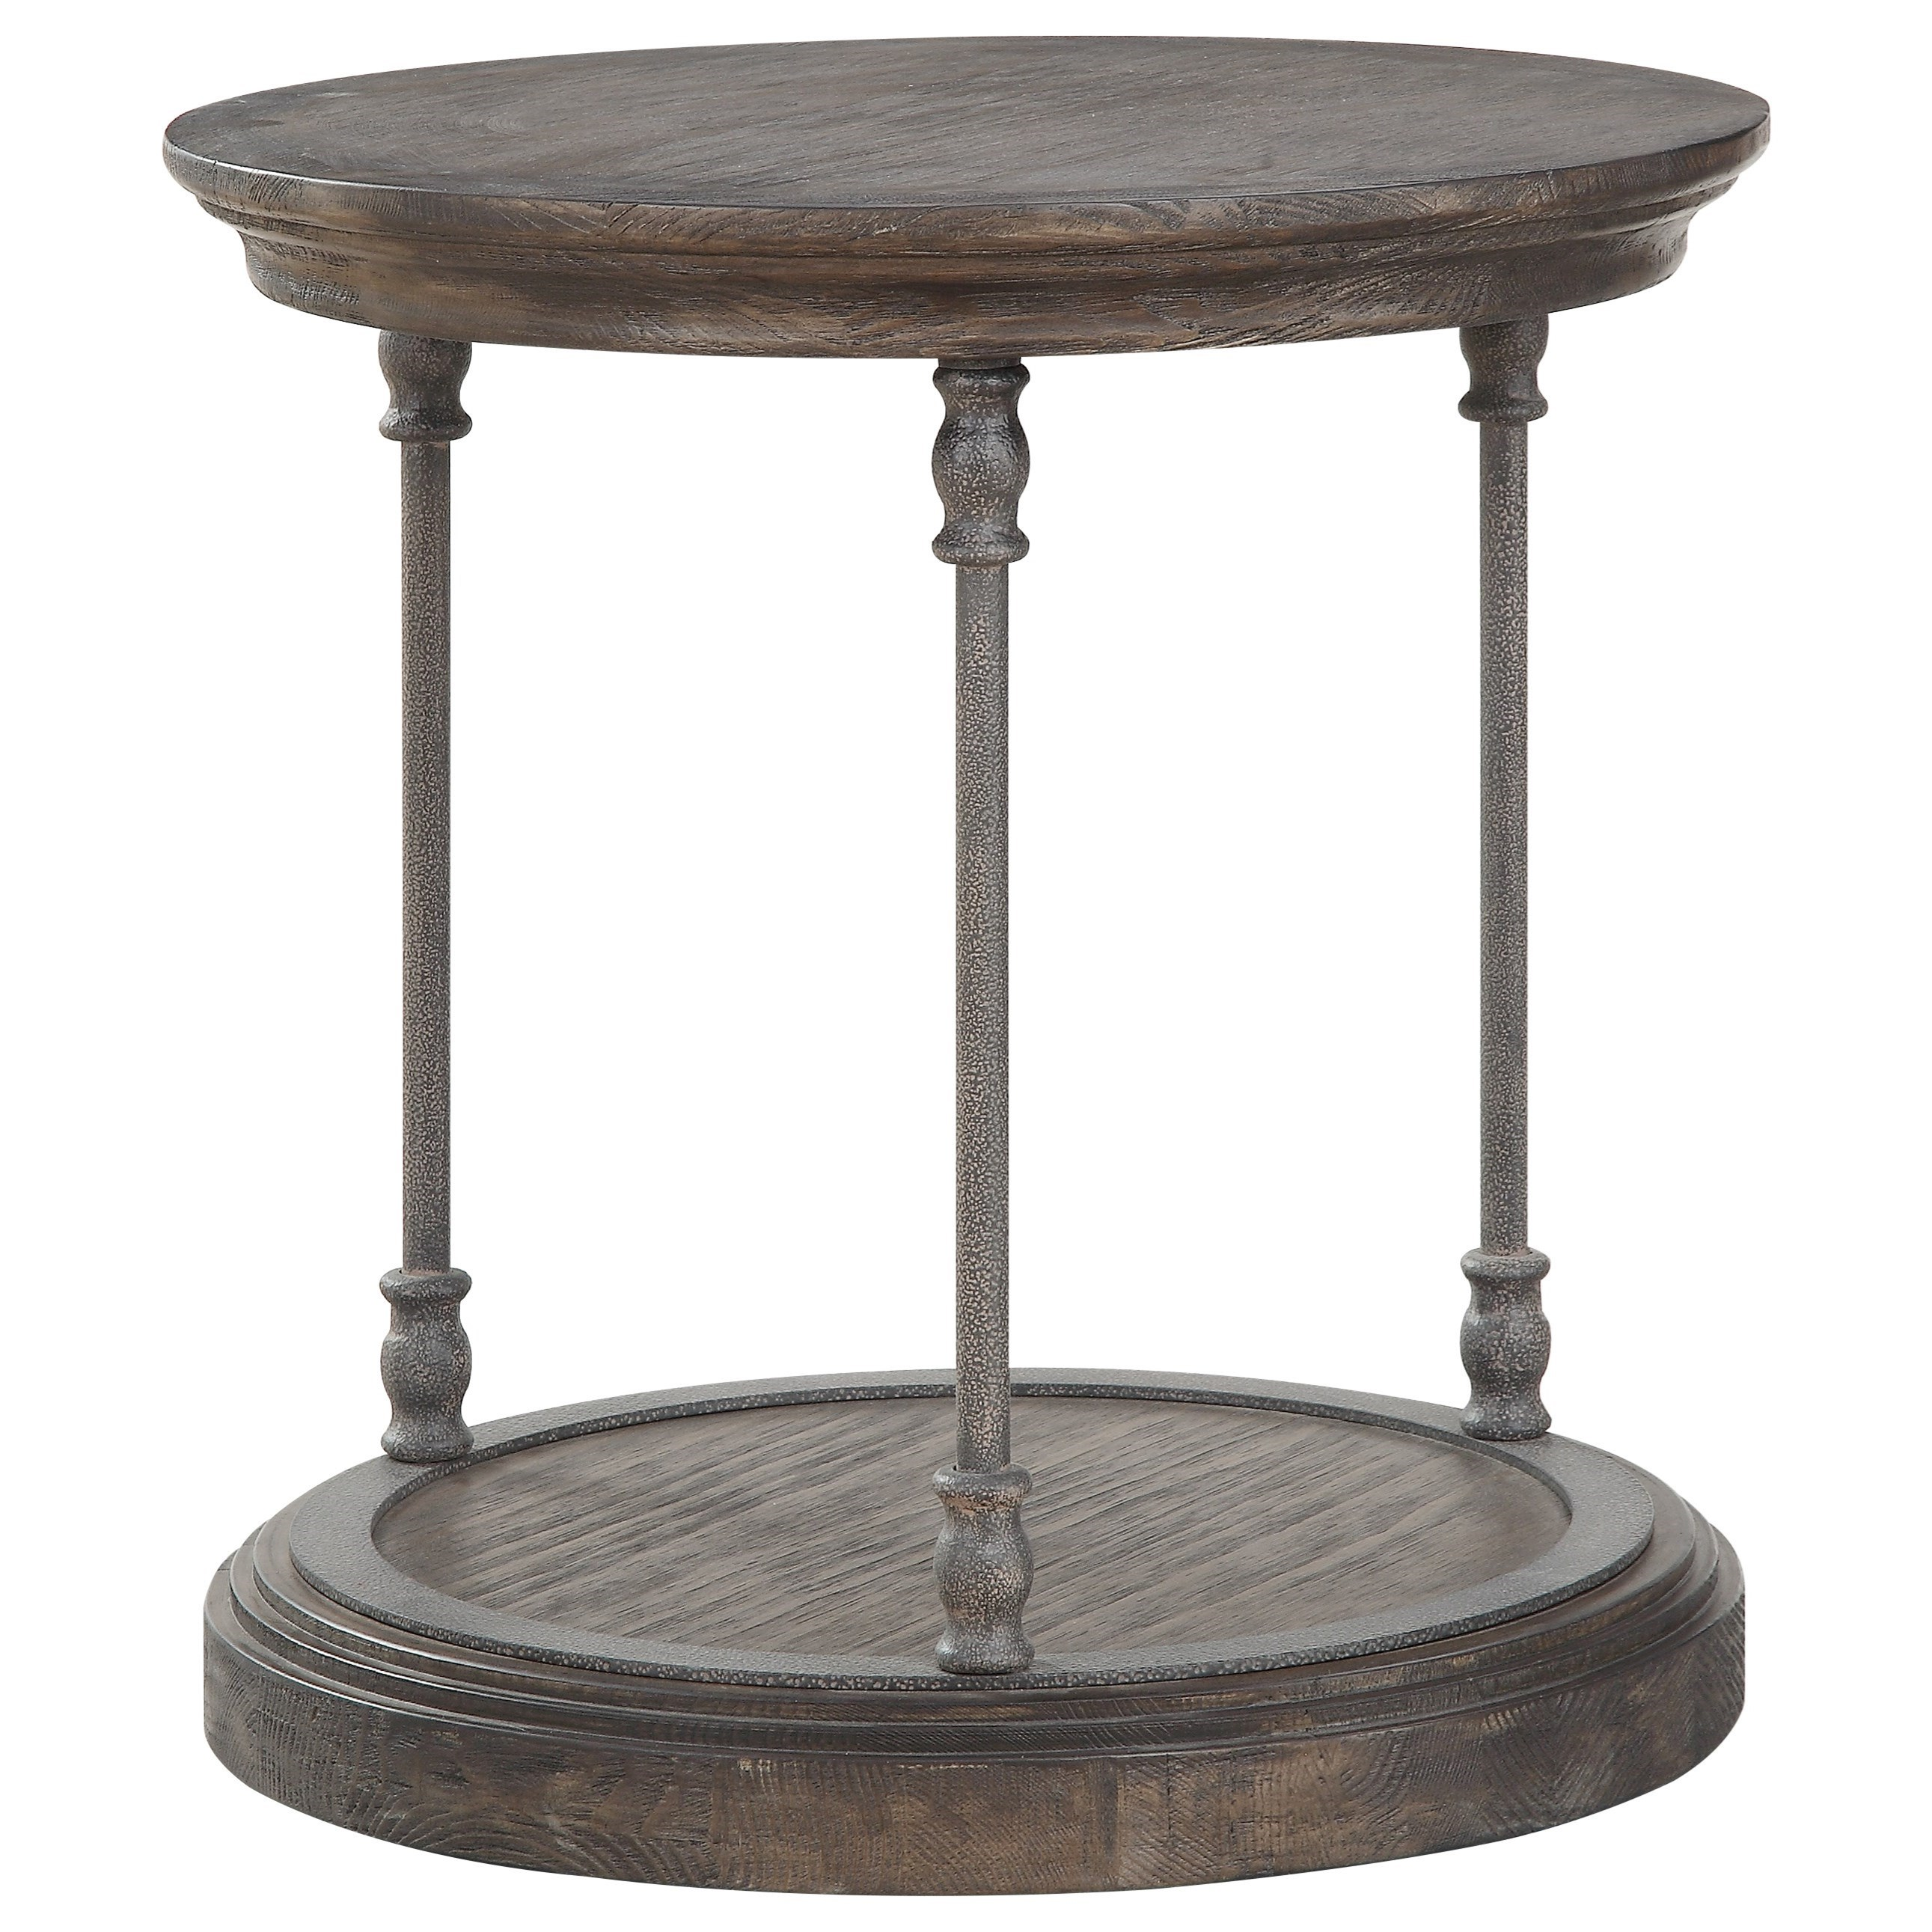 Corbin Round End Table by C2C at Walker's Furniture